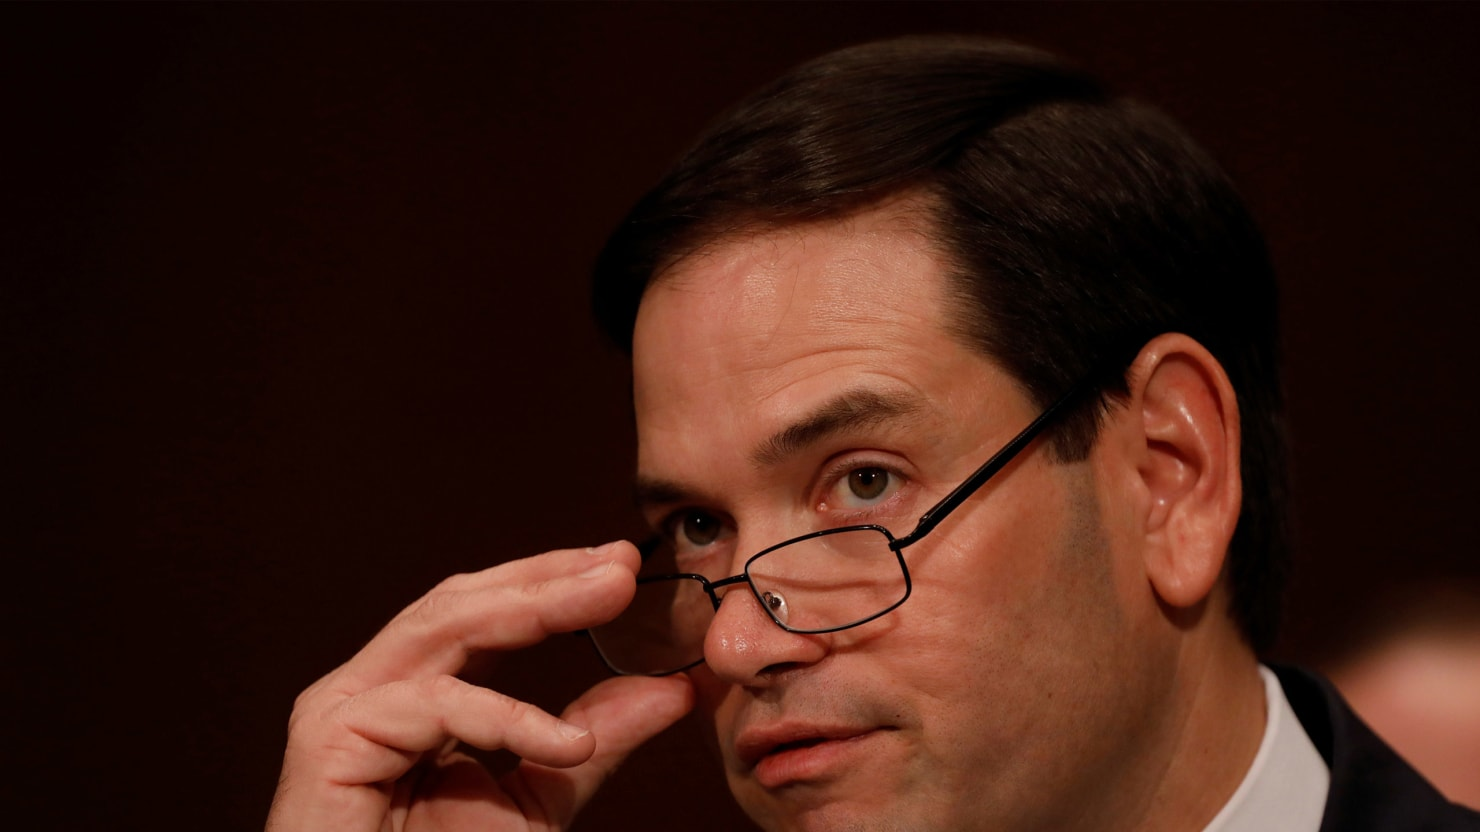 Marco Rubio Was Targeted by Russian Influence Operation, Ex-FBI Agent Reveals